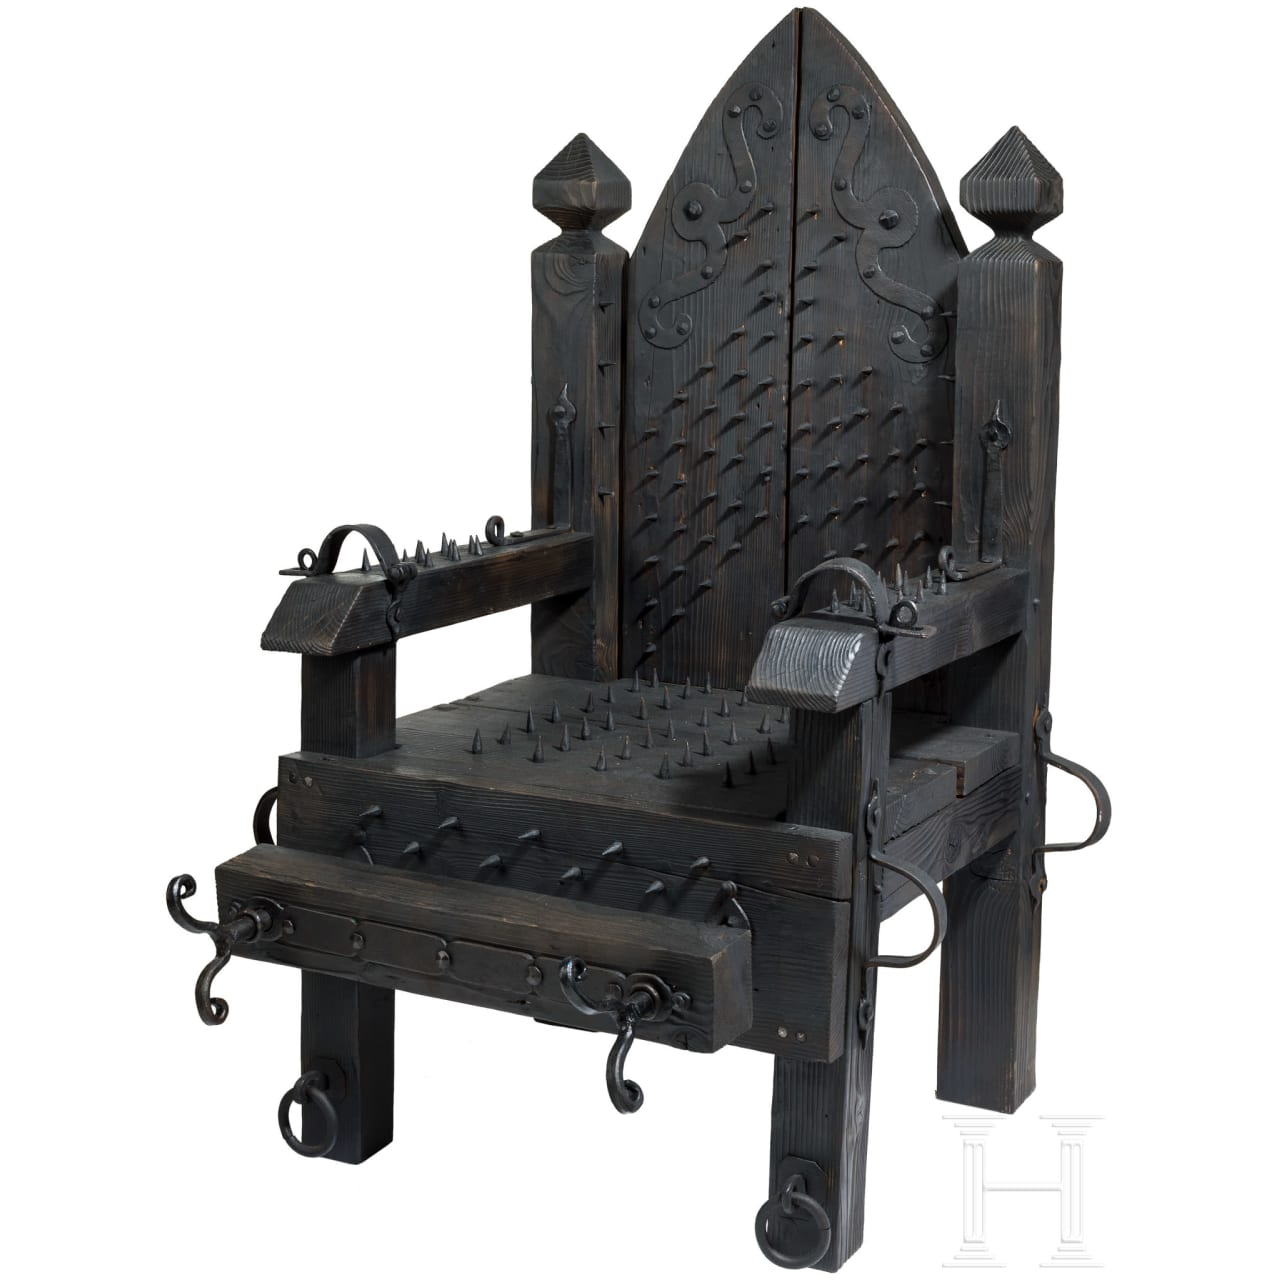 A torture chair, modern reproduction in the style of the 16th/17th century